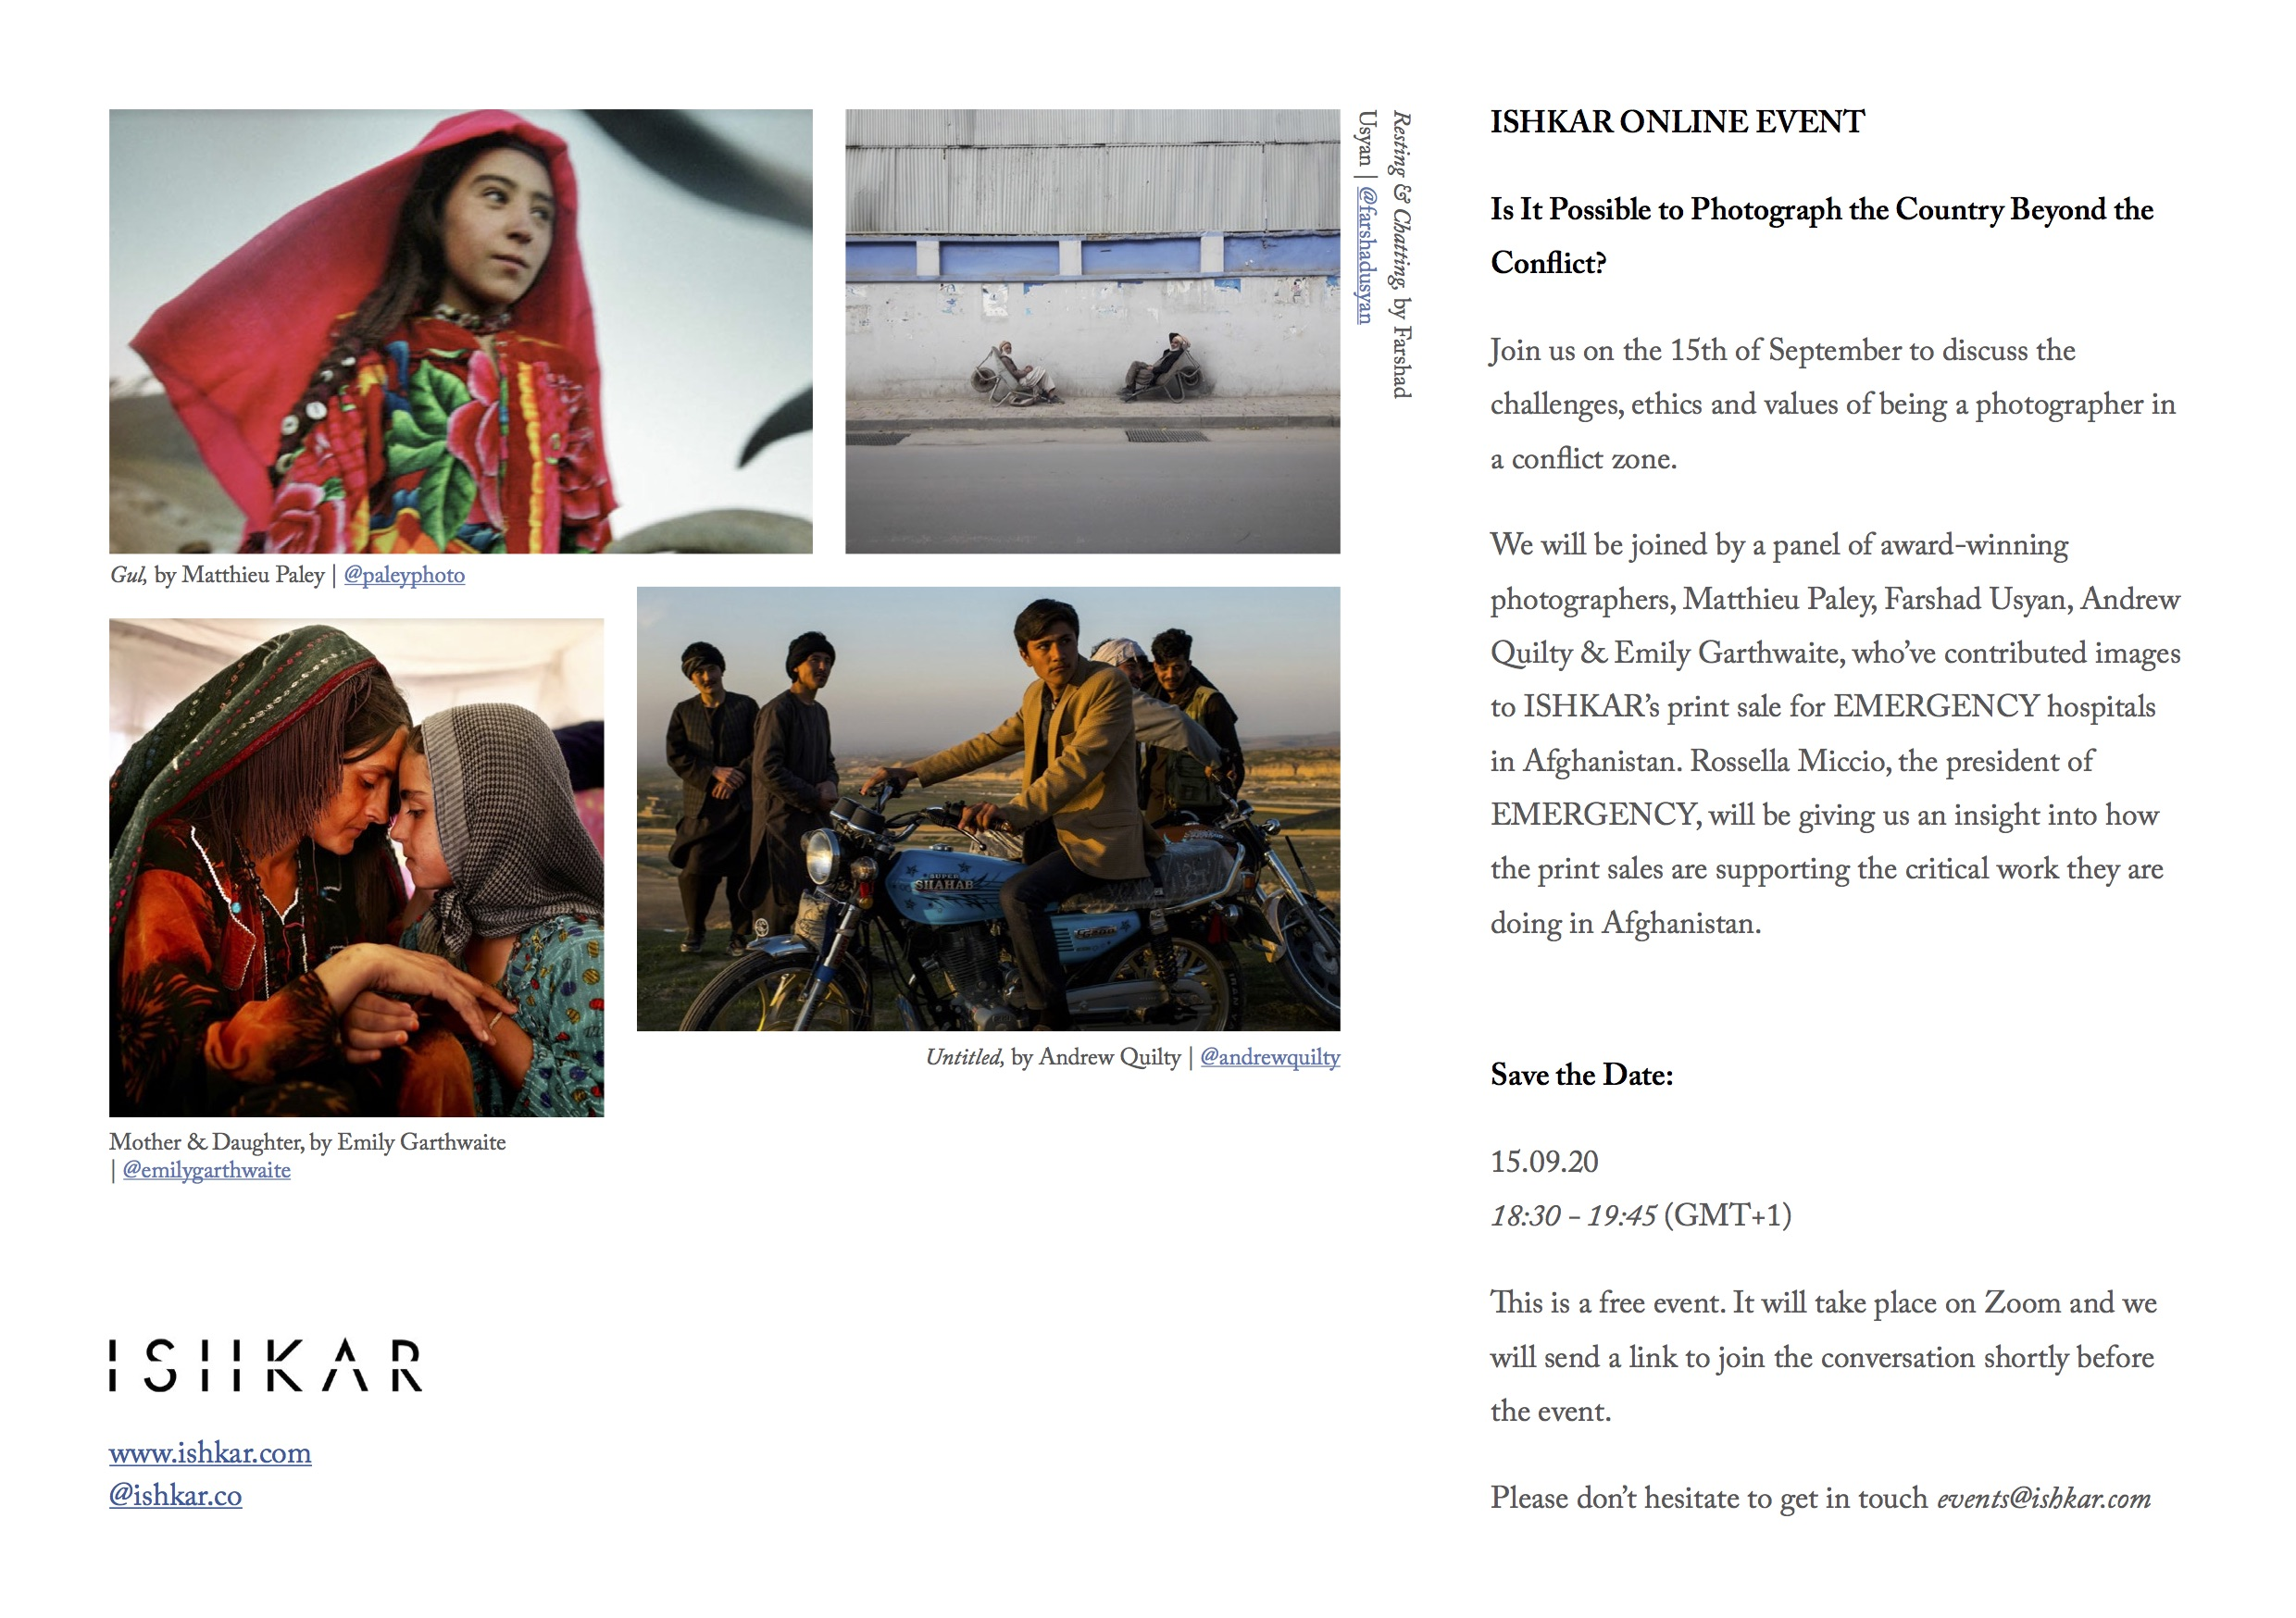 ISHKAR For EMERGENCY: Is It Possible To Photograph The Country Beyond The Conflict?